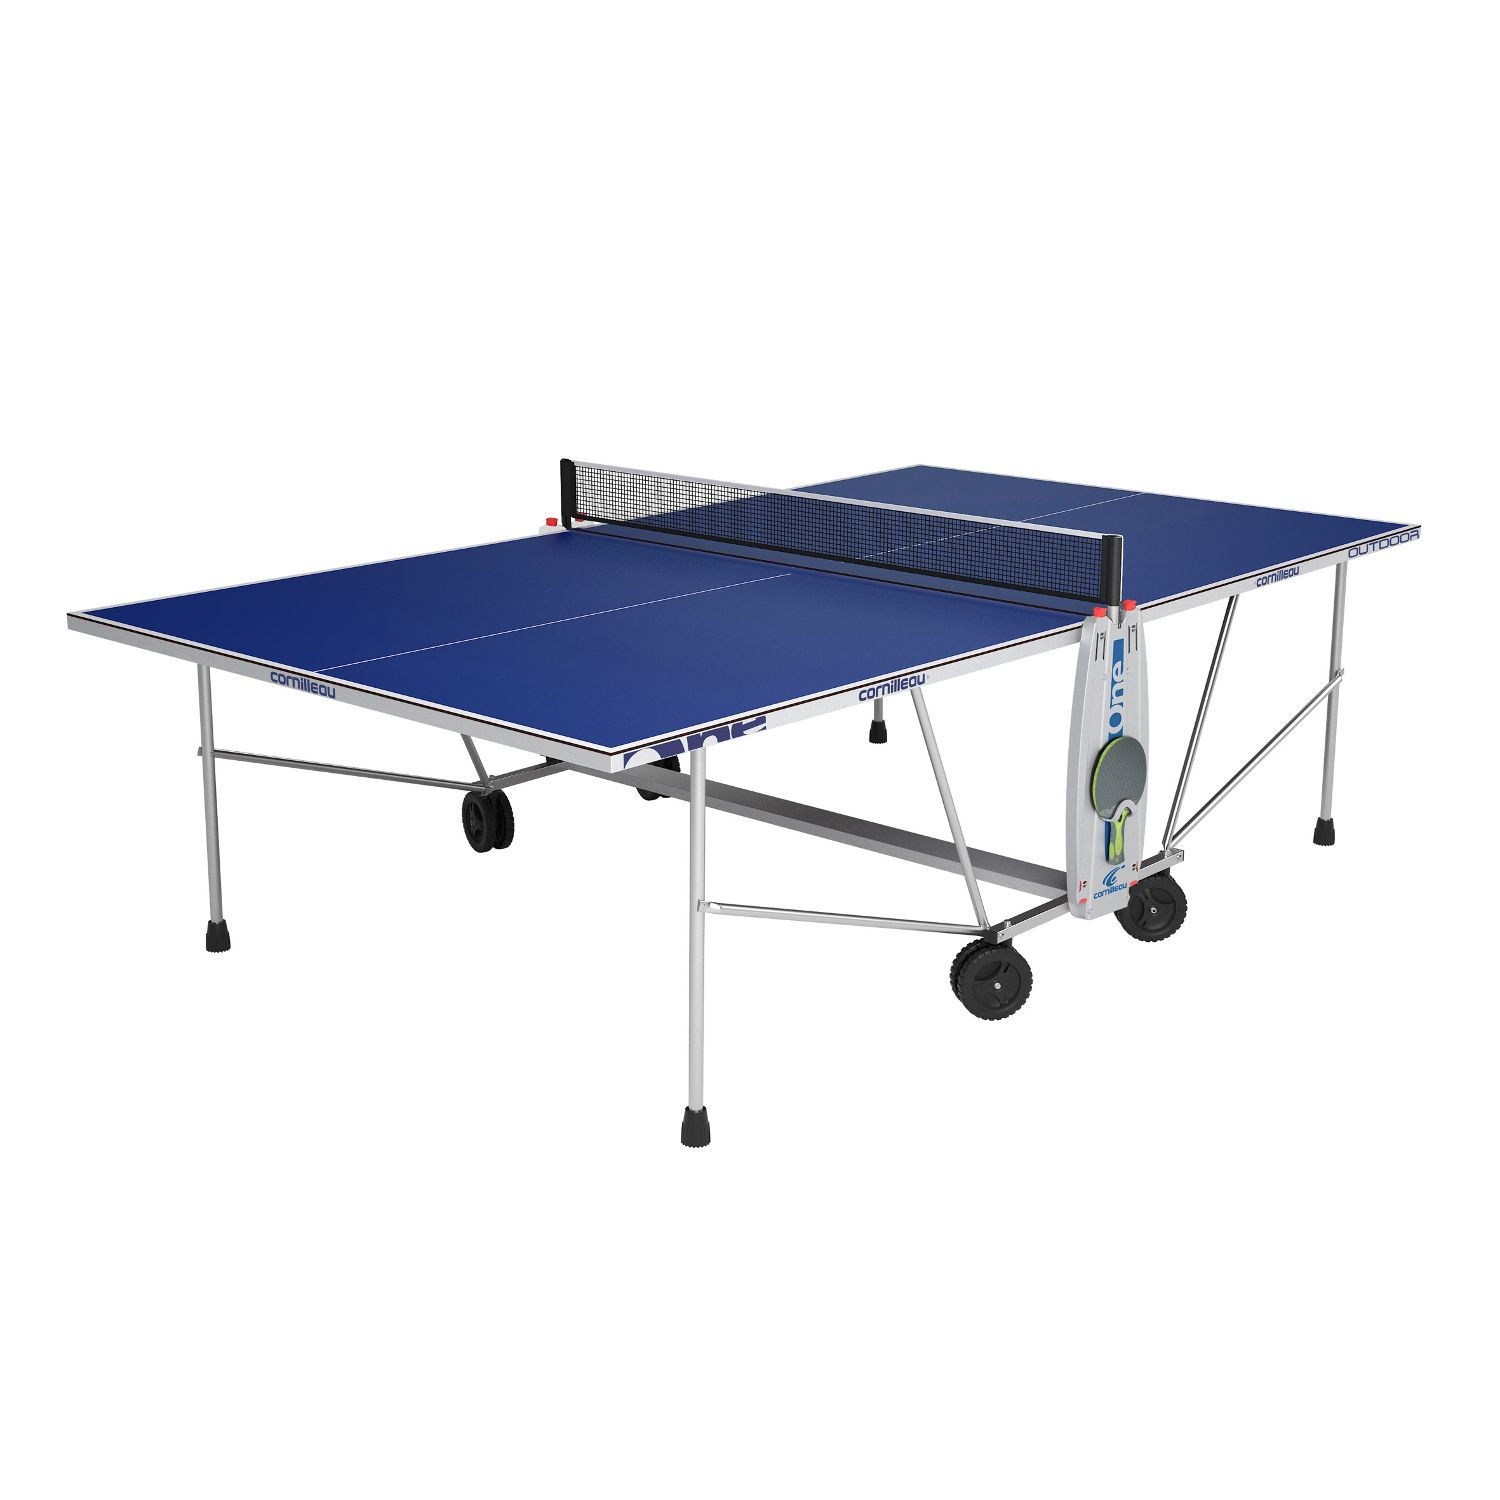 Cornilleau outdoor sport one rollaway table tennis table - Table de ping pong cornilleau 440 ...